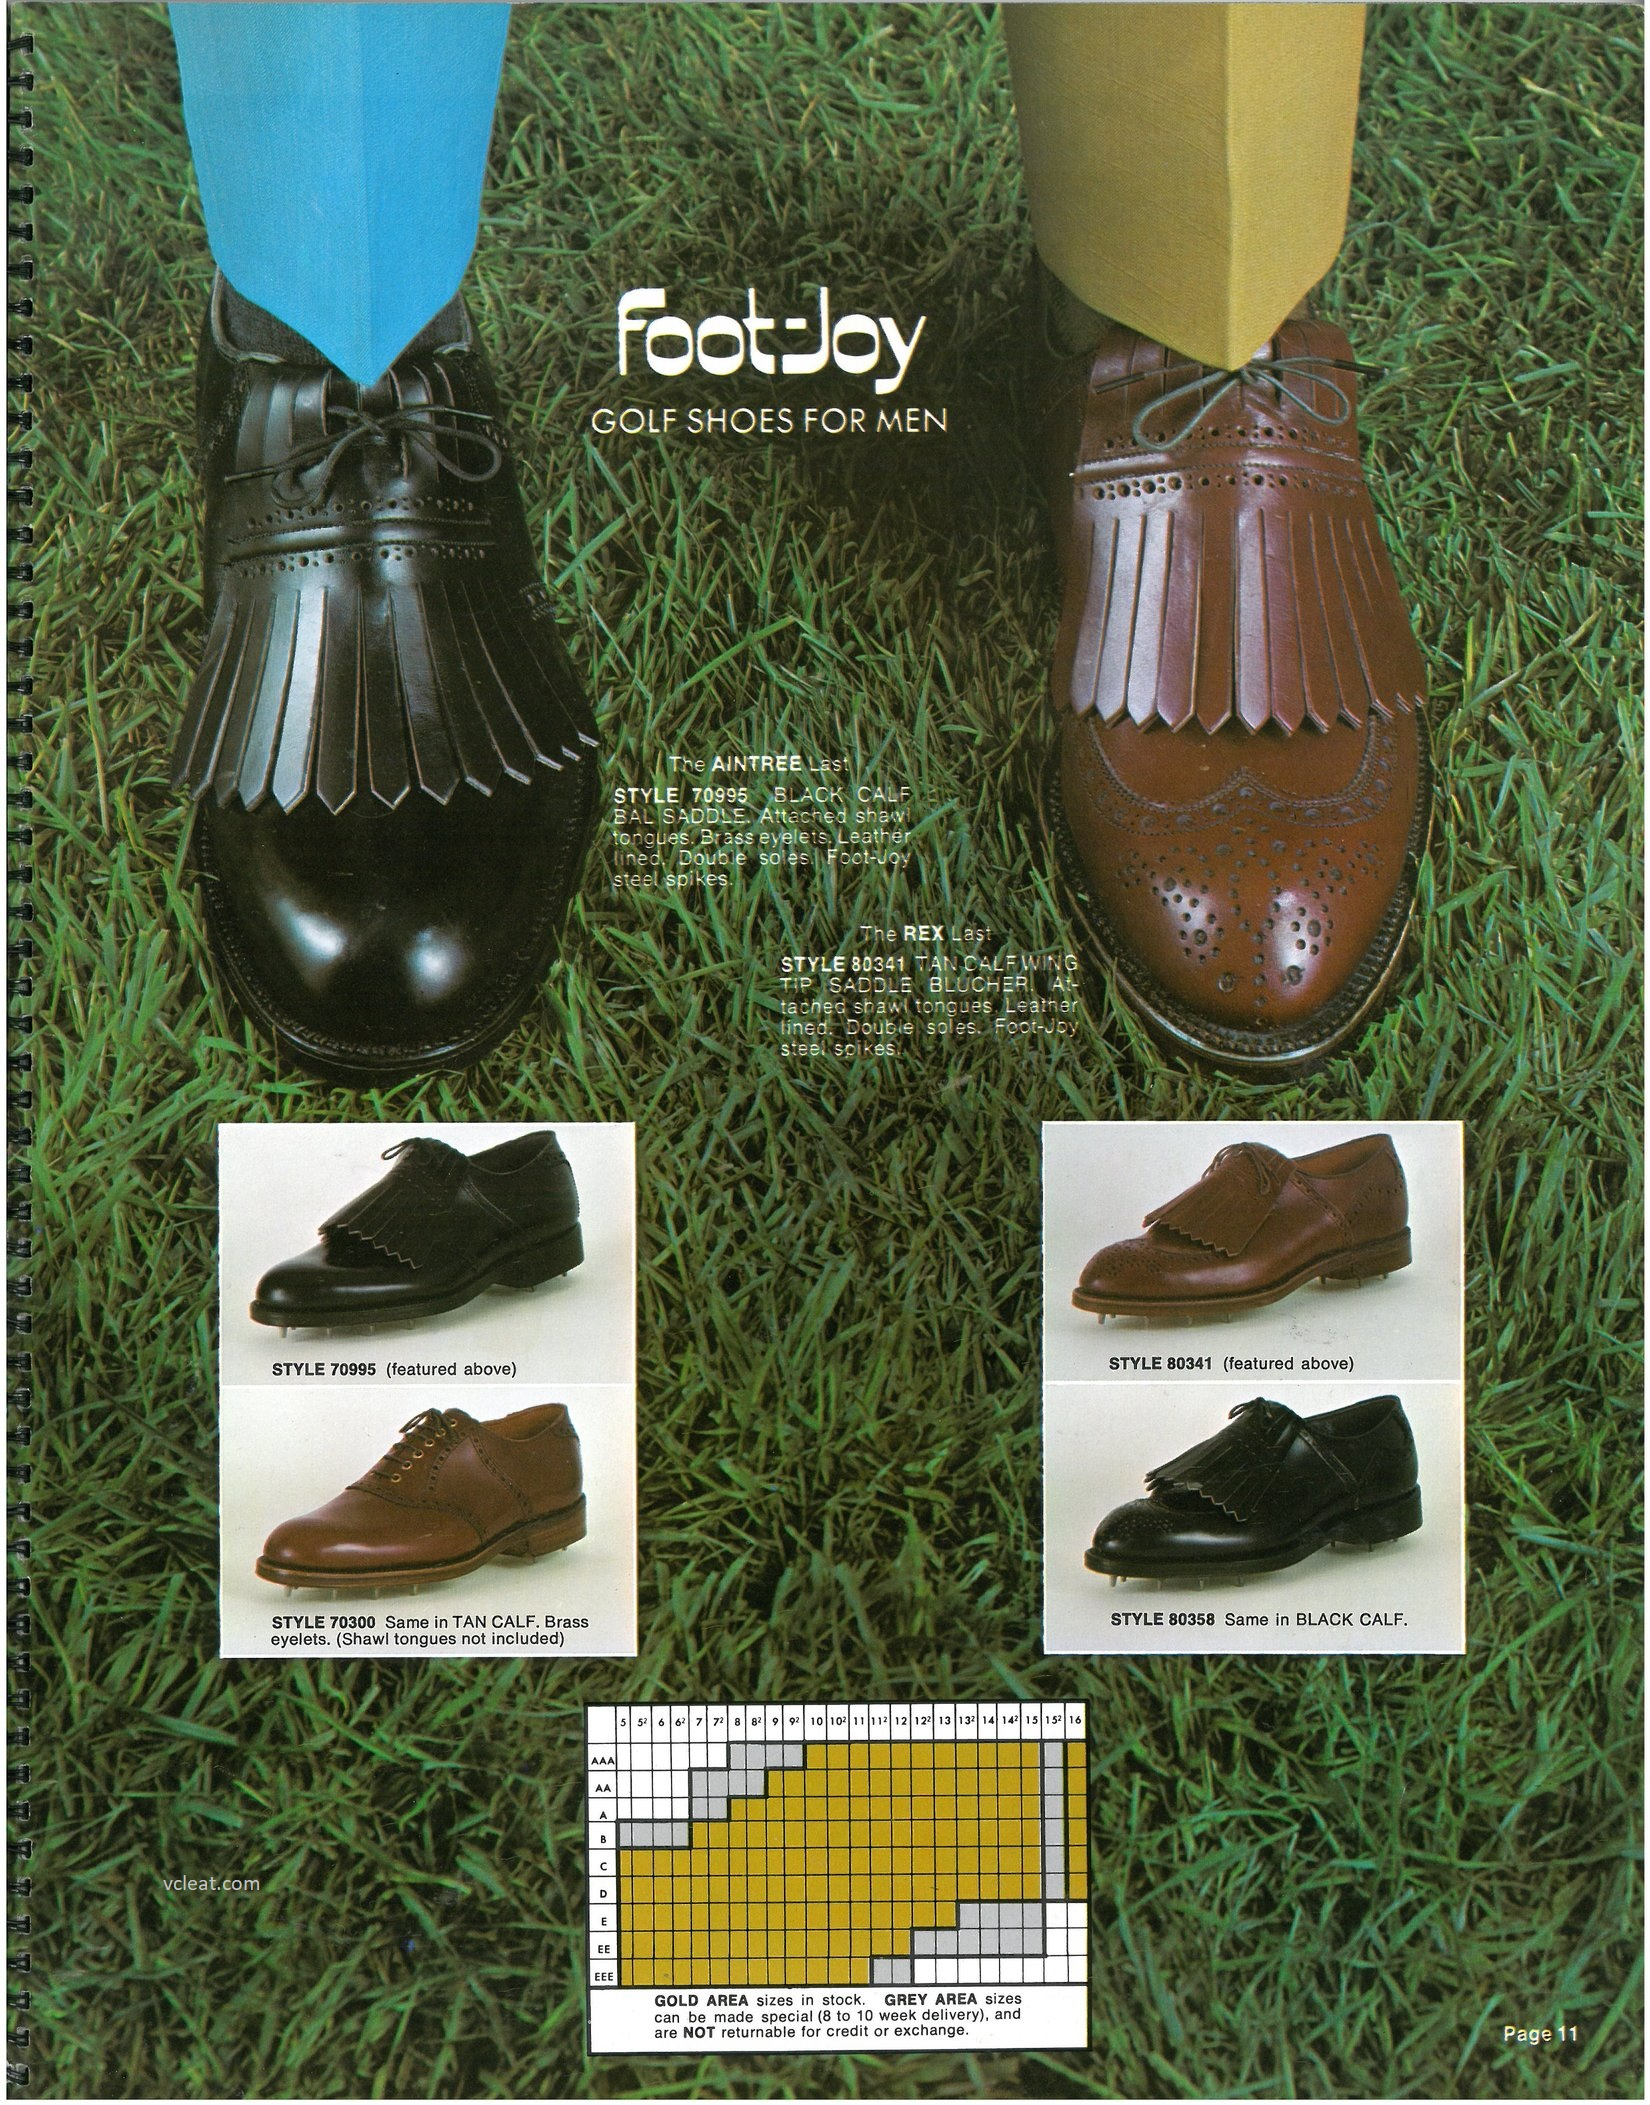 FootJoy Saddle 70995 80341